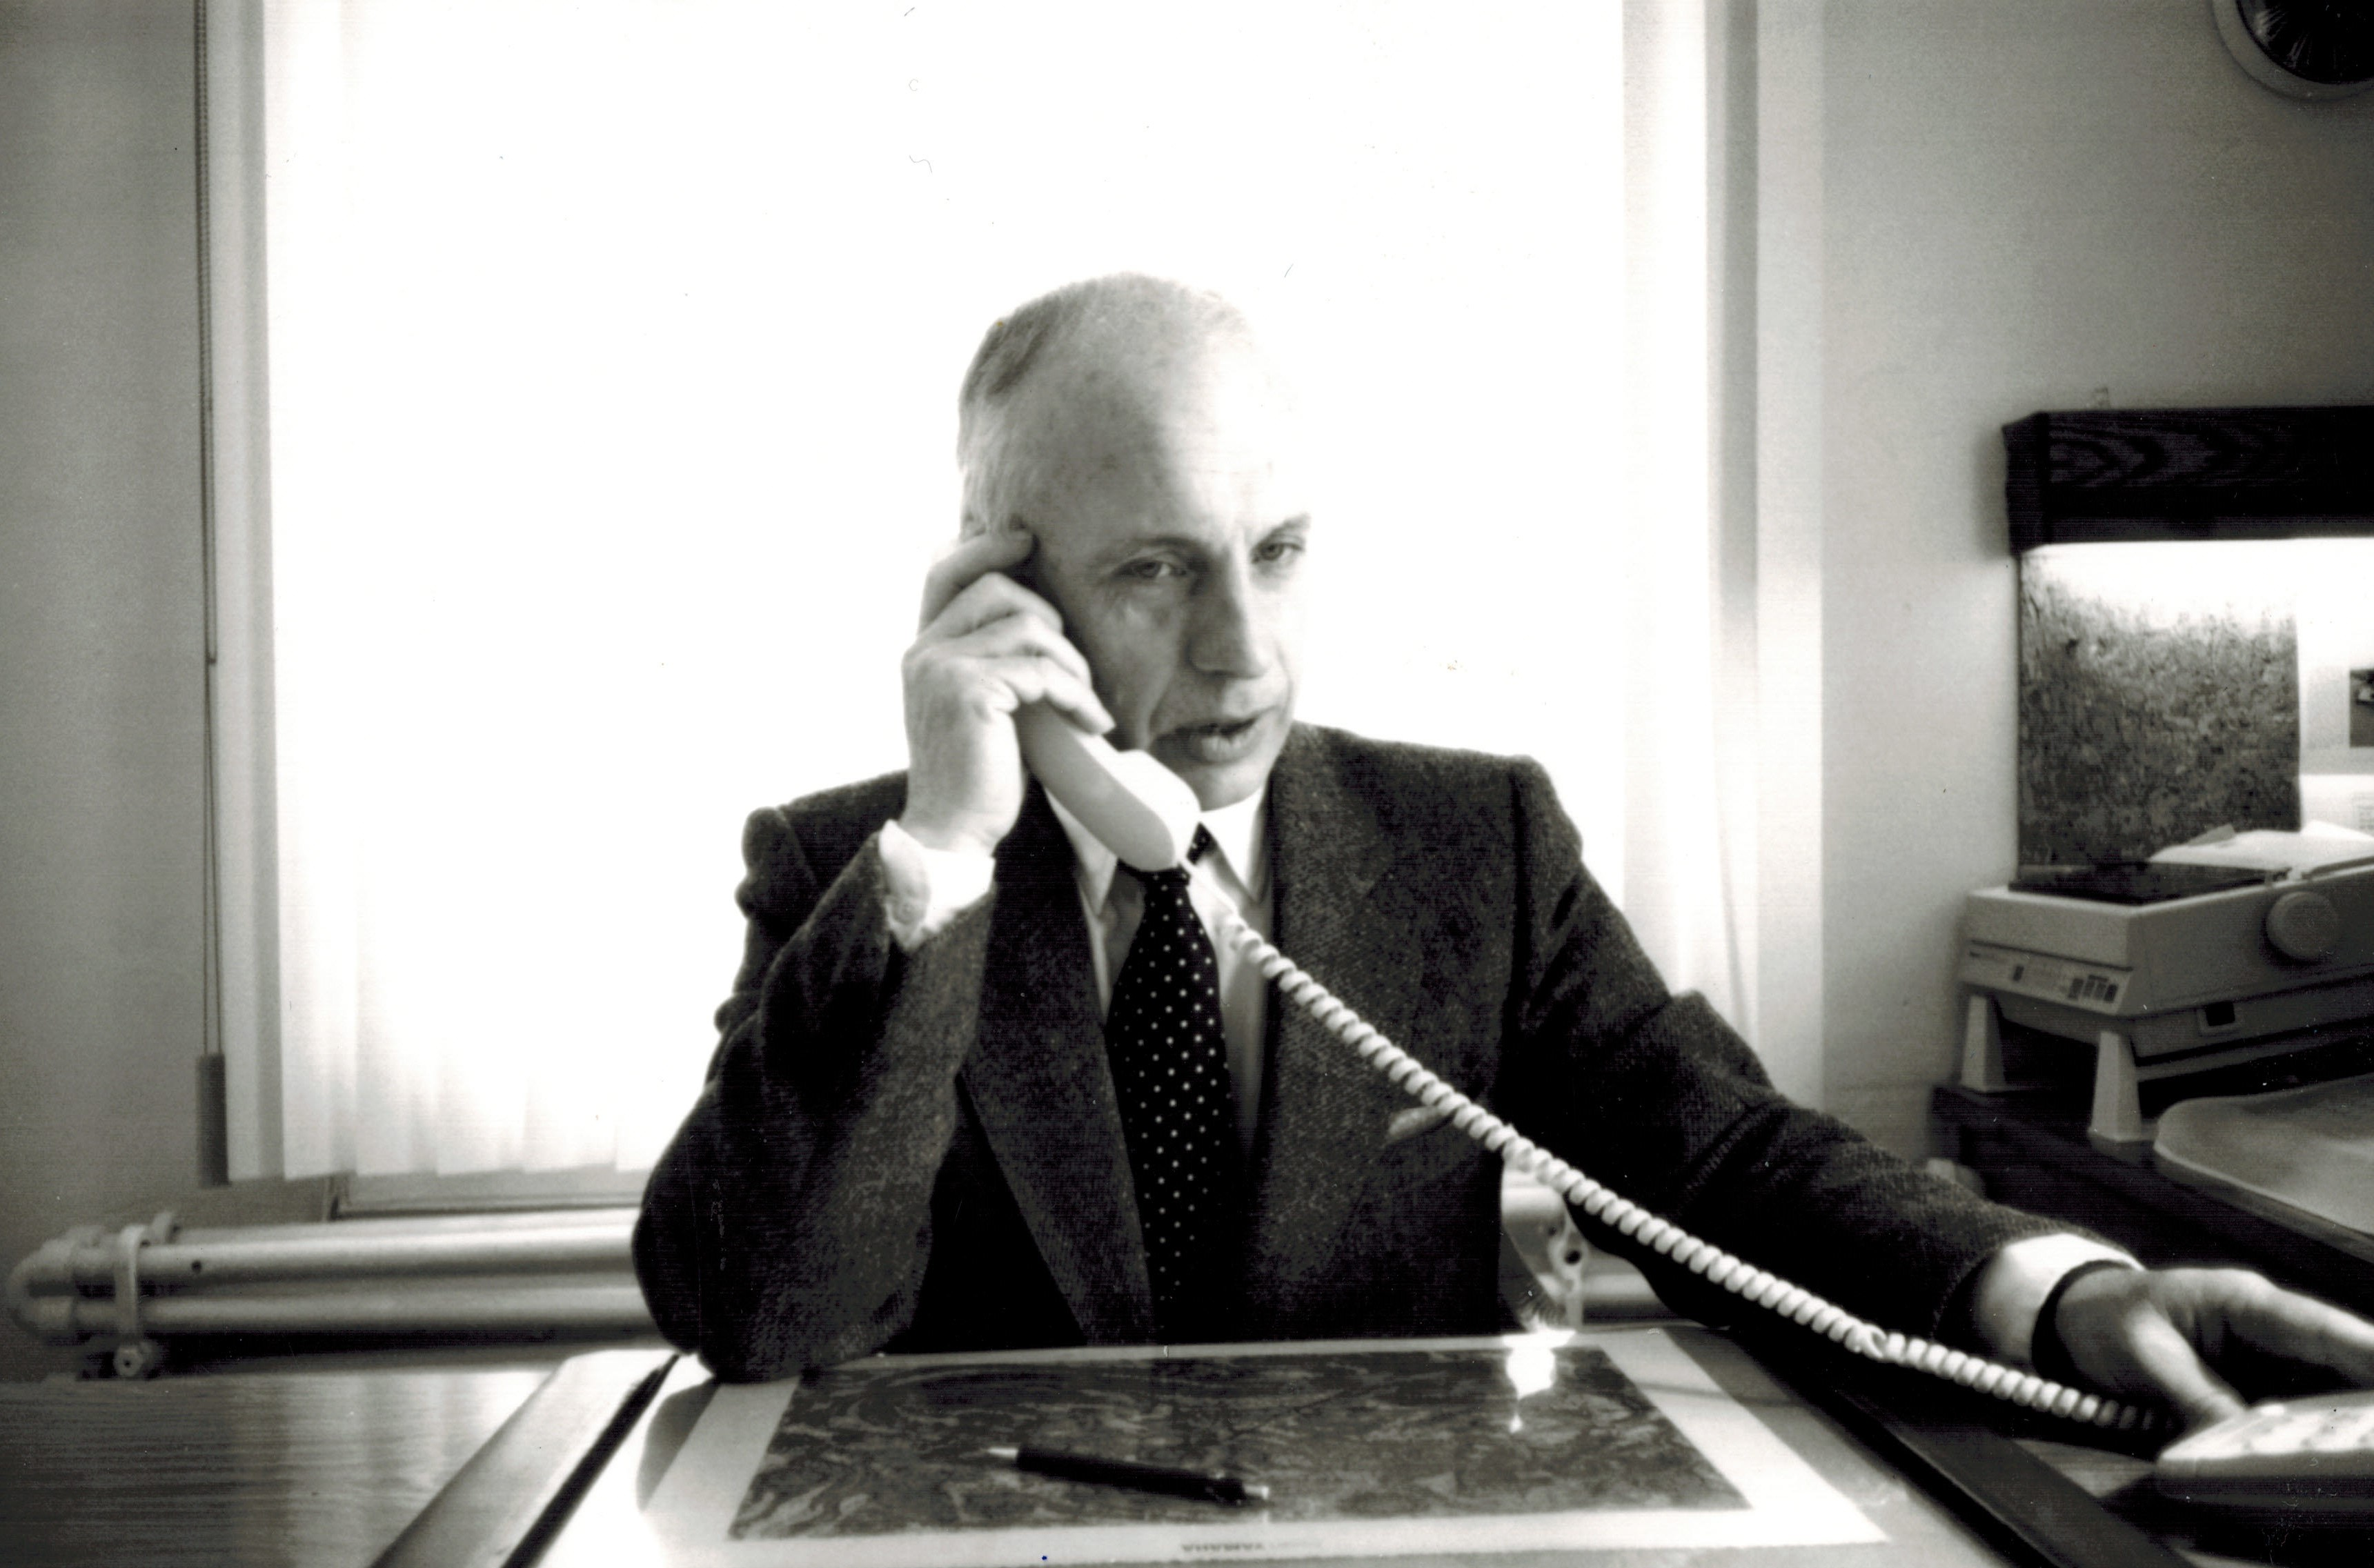 Black and white picture of a man dressed in a suit holding a phone to his ear in a office